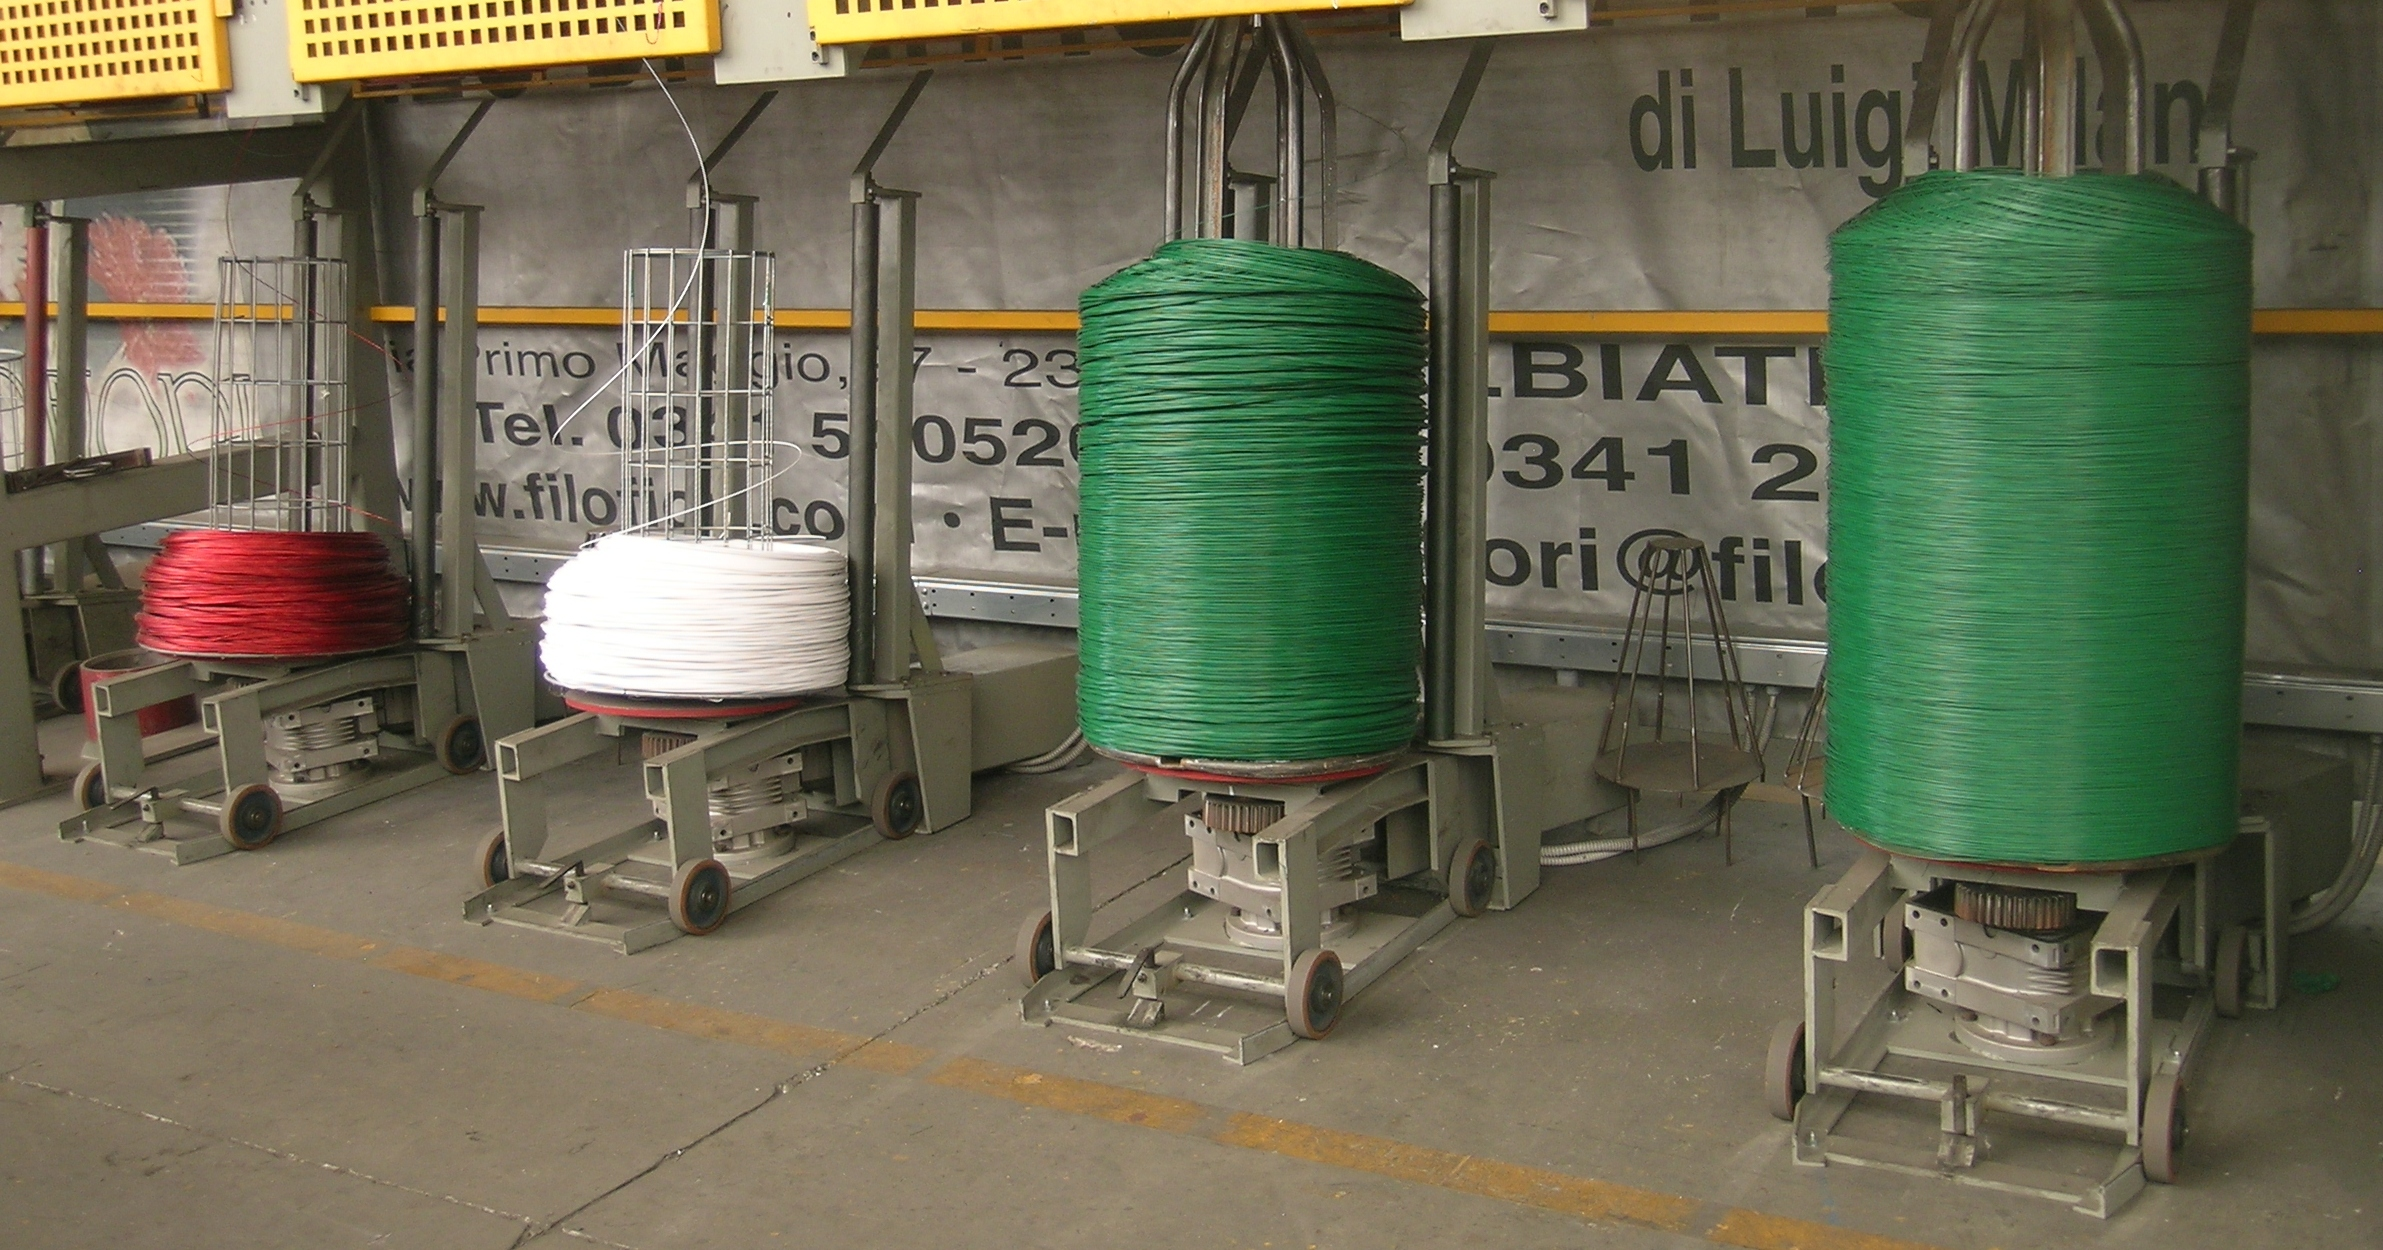 EMERGENZA COVID 19 WE SUPPLY IRON WIRE